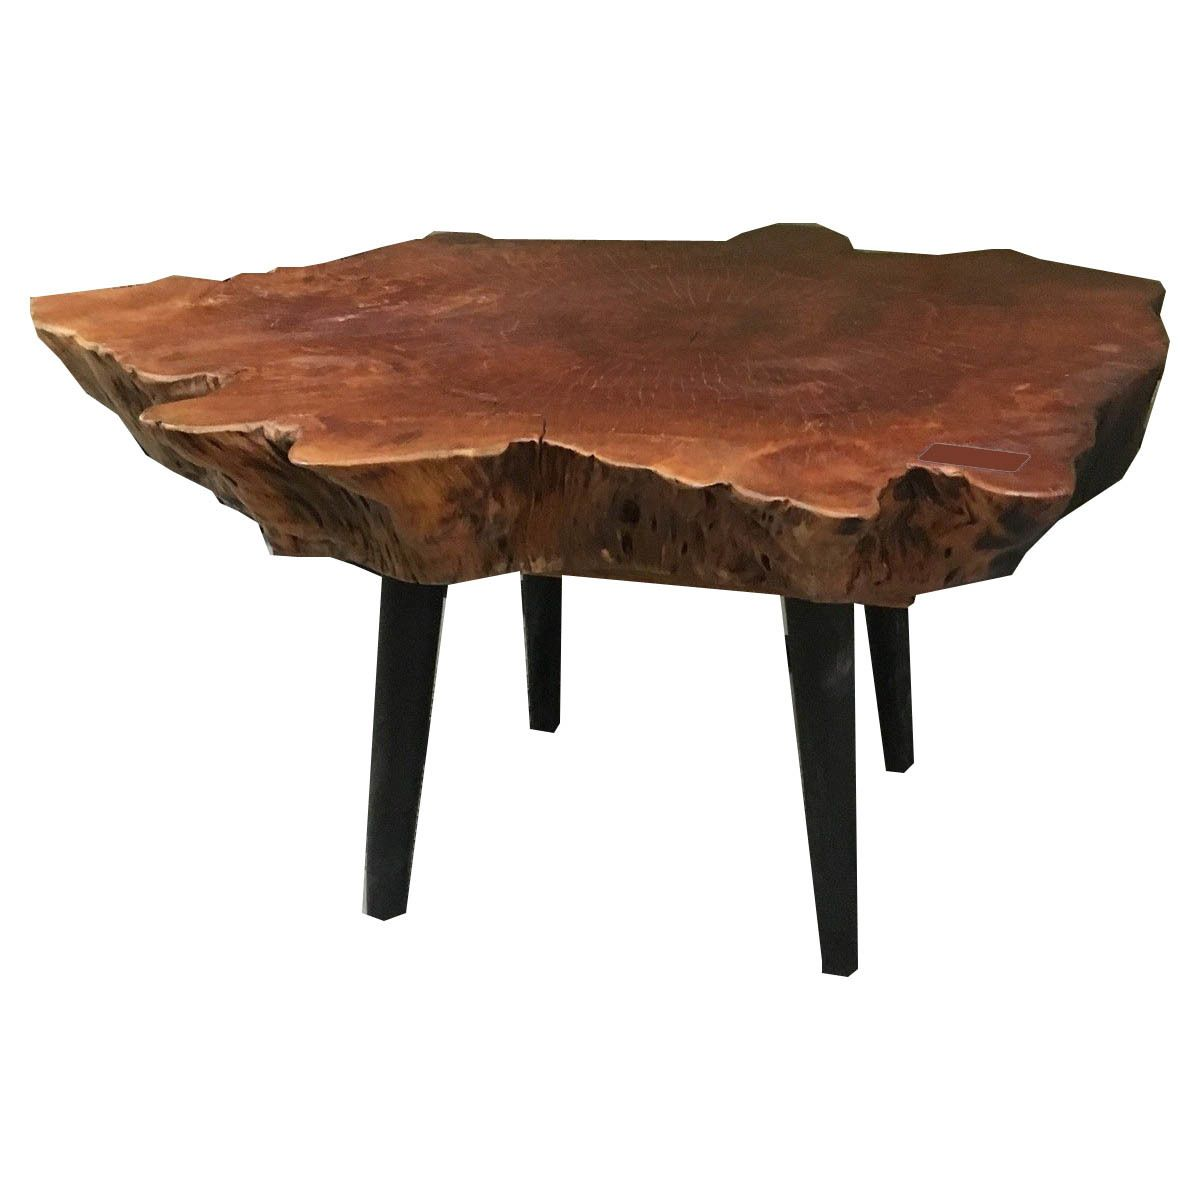 36x31 Inch Lychee Wood Coffee Table With Black Wooden Legs Mohr